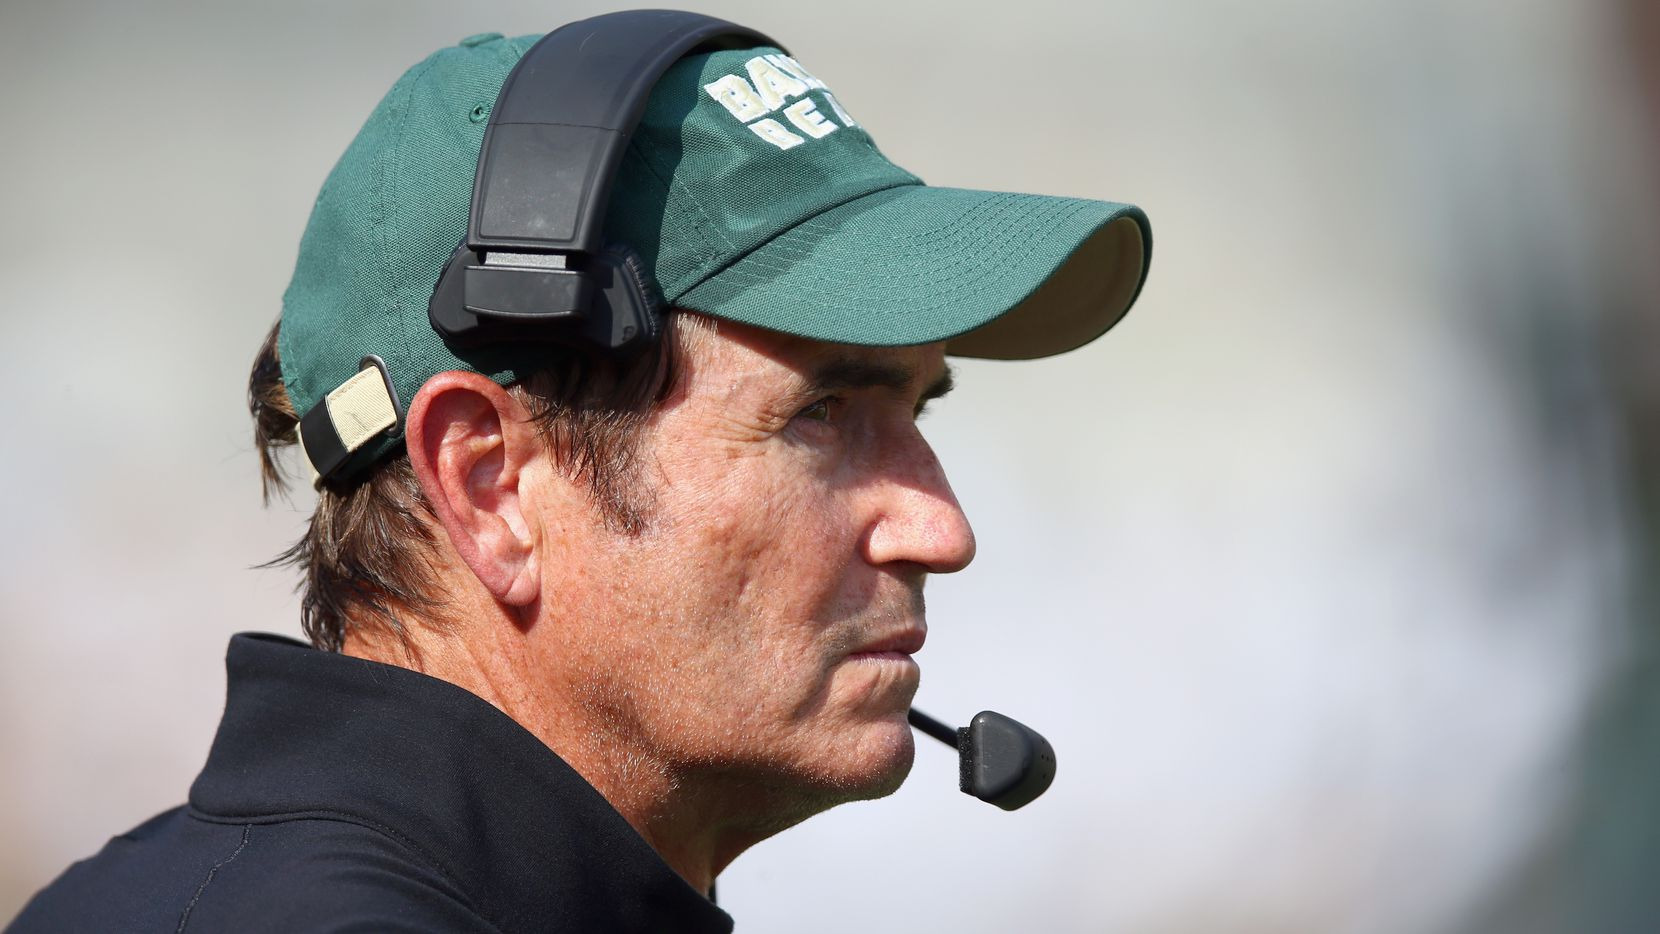 WACO, TX - SEPTEMBER 26:  Head coach Art Briles of the Baylor Bears leads his team against the Rice Owls at McLane Stadium on September 26, 2015 in Waco, Texas.  (Photo by Tom Pennington/Getty Images)